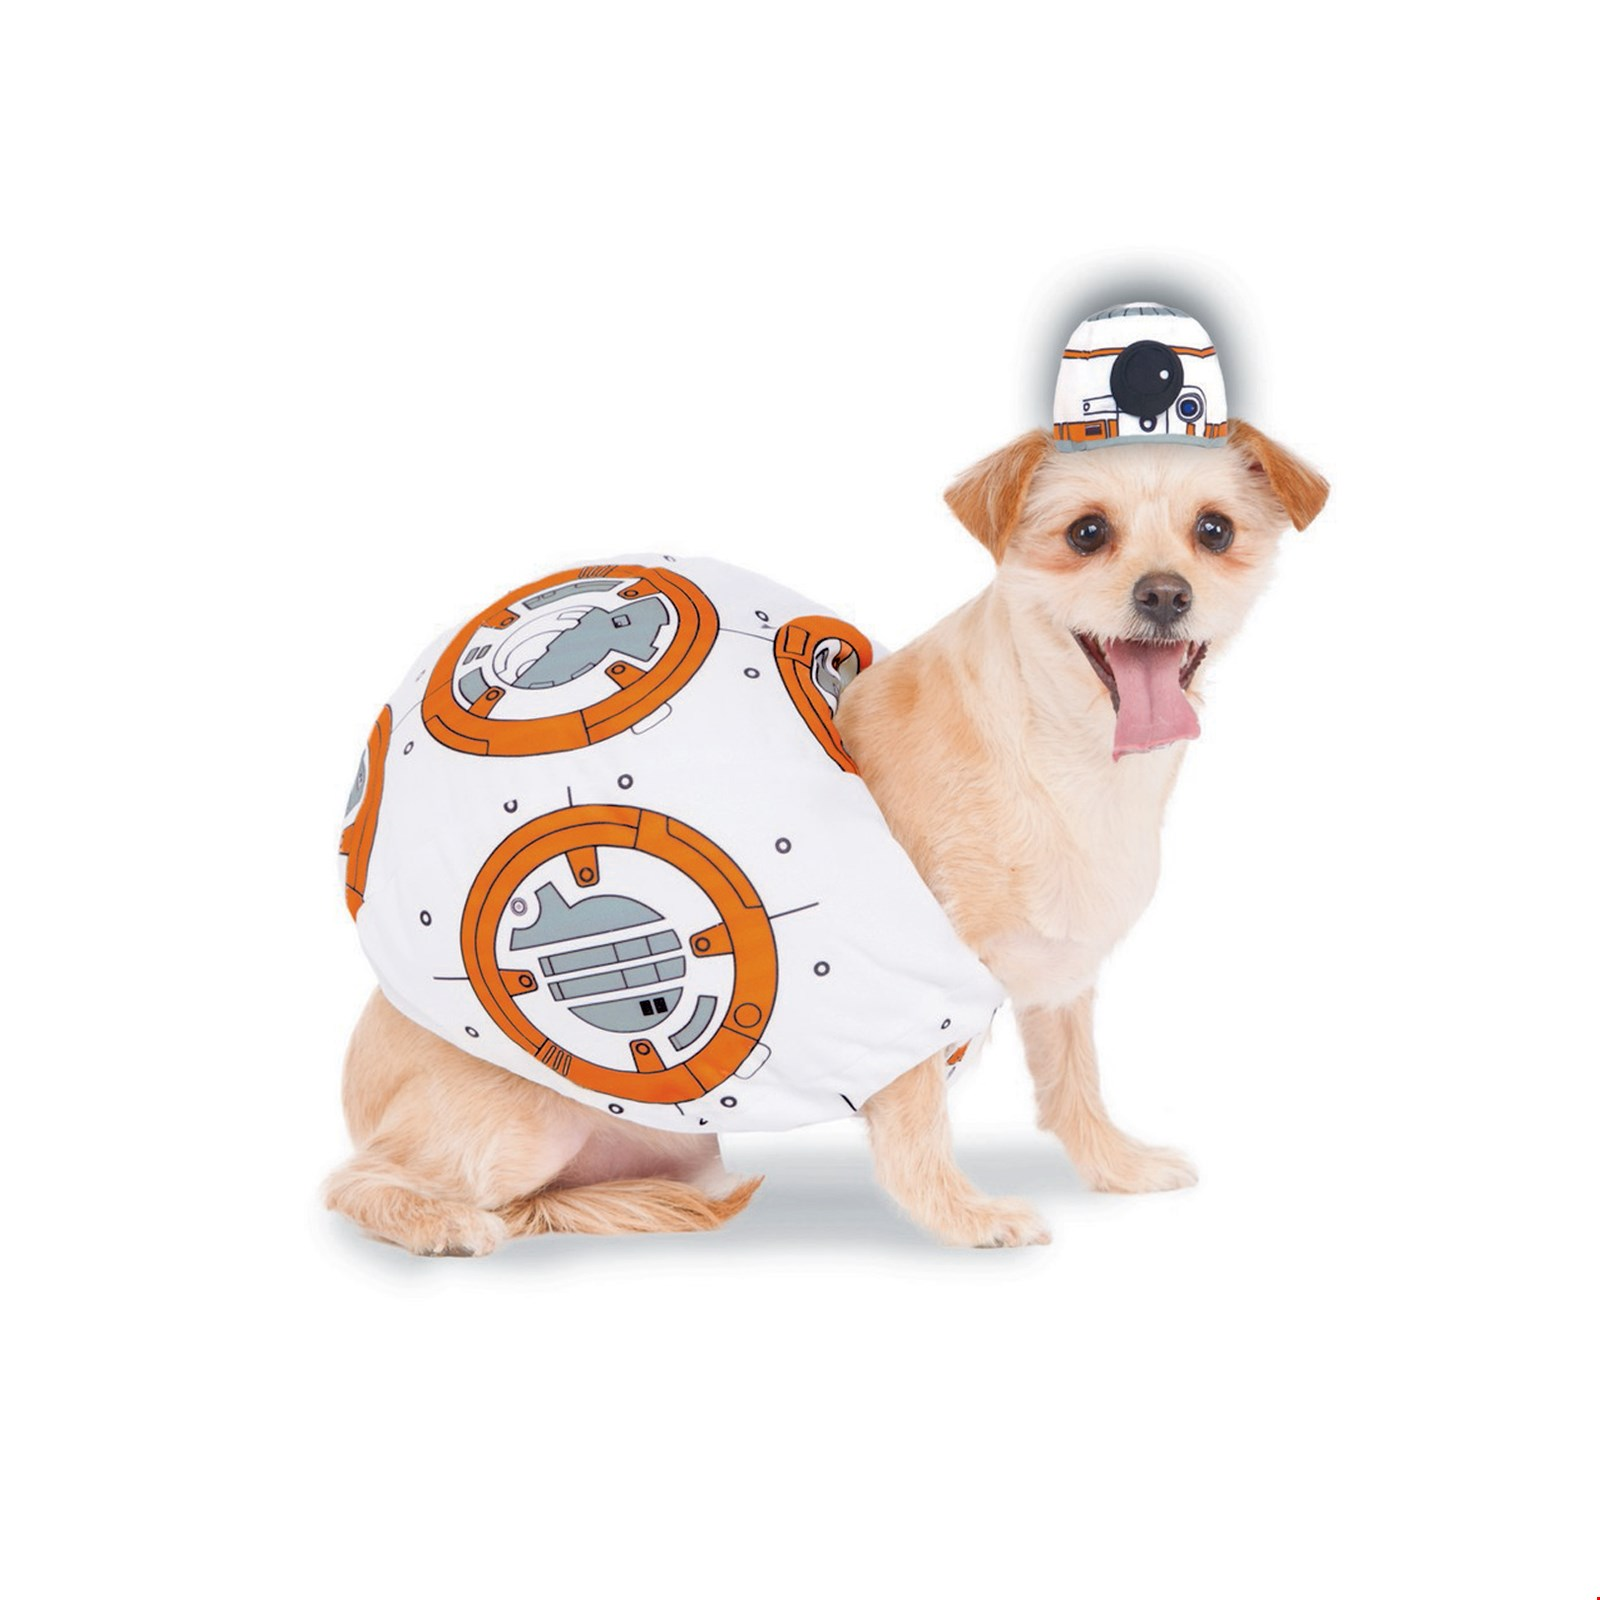 Star Wars Bb-8 Pet Halloween Costume